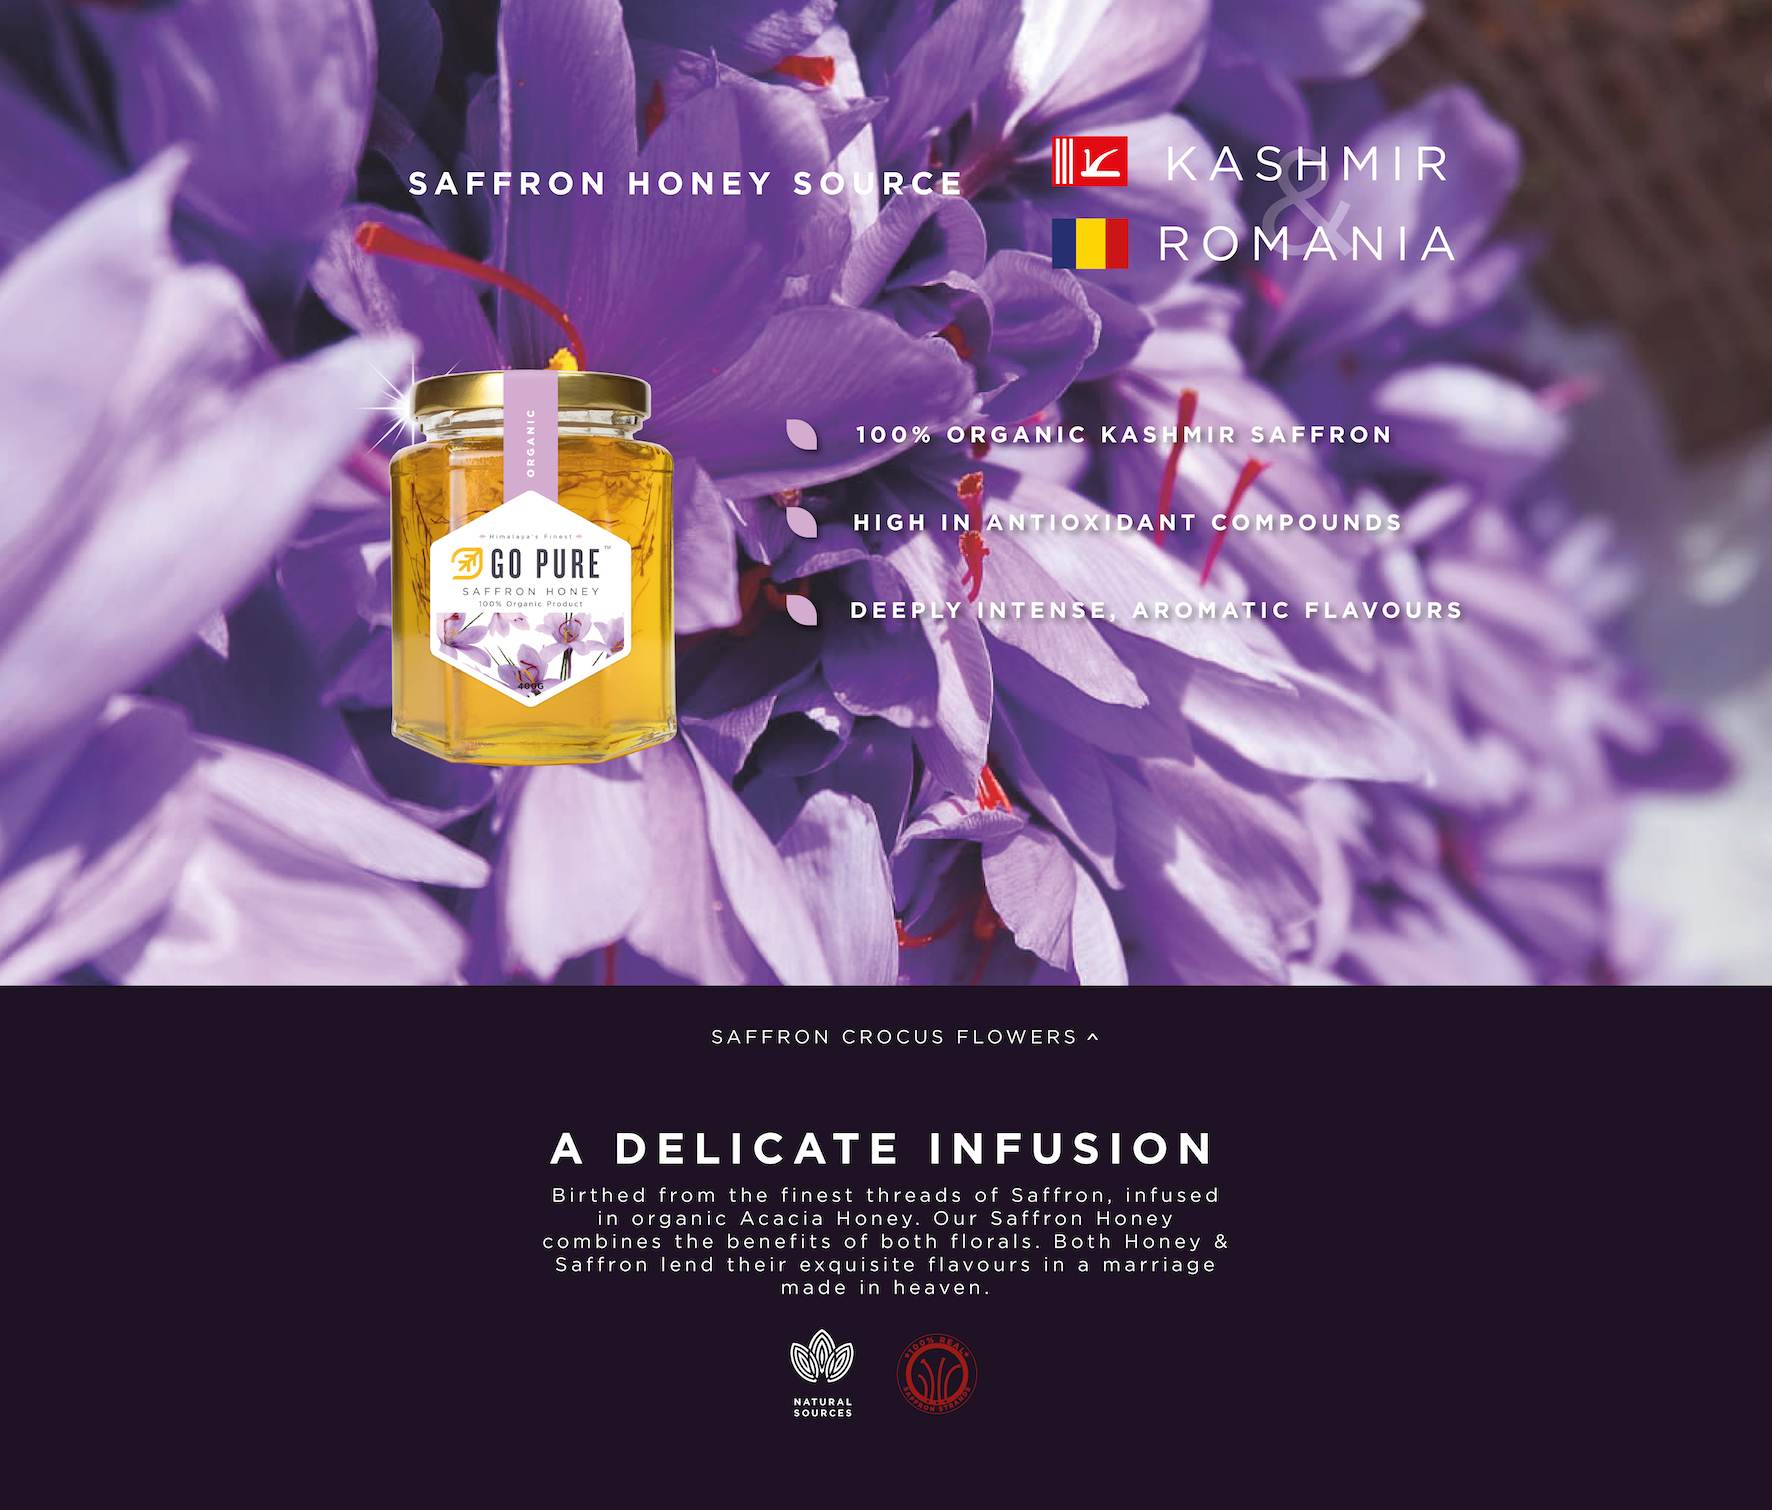 Organic Saffron Honey. - 100% organic Kashmir saffron, - High in antioxidant compounds, - Deeply intense, aromatic flavours; Saffron Crocus Flowers. A Delicate Infusion. Birthed from the finest threads of Saffron, infused in organic Acacia Honey. Our Saffron Honey combines the benefits of both florals. Both Honey & Saffron lend their exquisite flavours in a marriage in heaven.